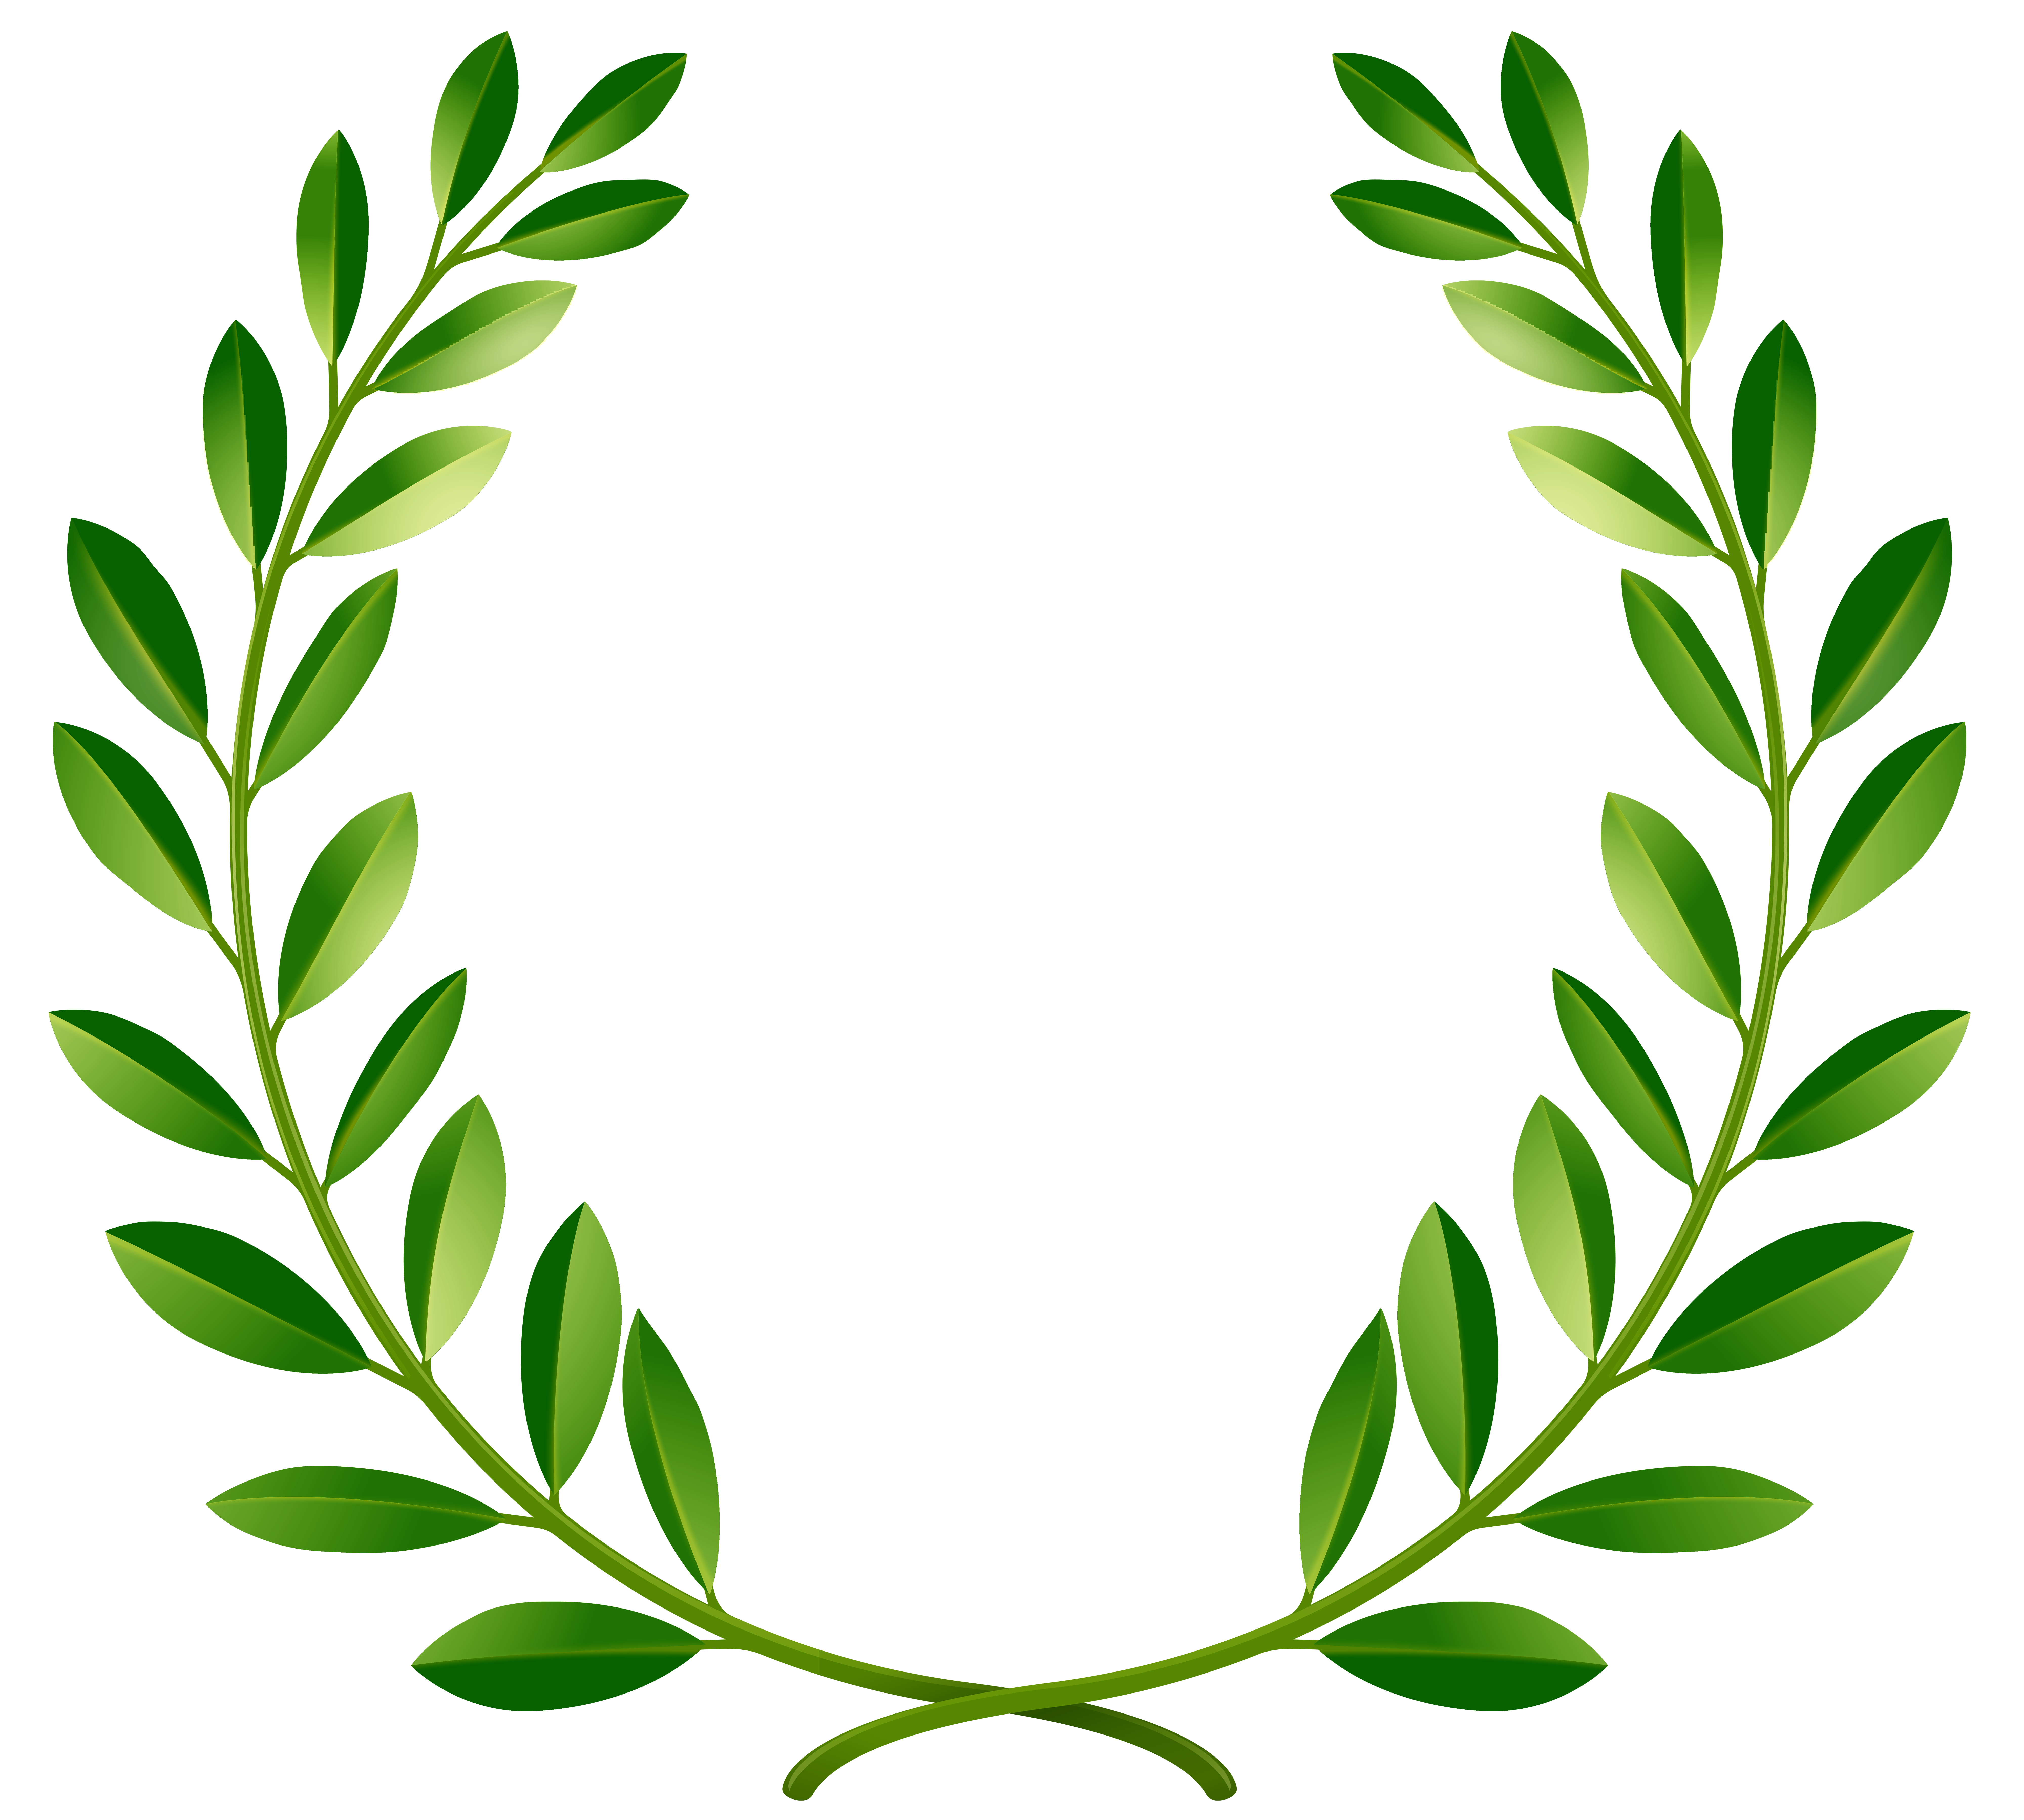 8000x7194 Green Laurel Leaves Png Clip Art Image Bampf Generally